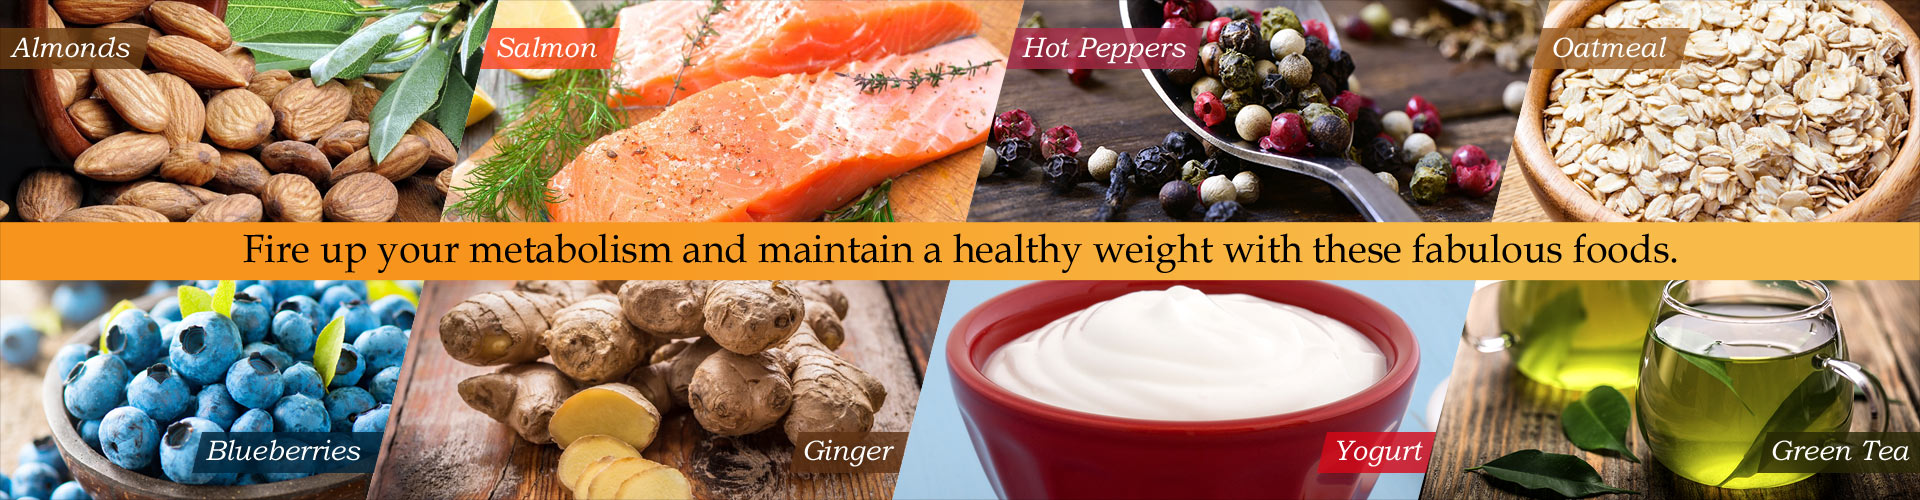 Fire up your metabolism and maintain a healthy weight with these fabulous foods.  Almonds, Salmon, Hot Peppers, Oatmeal, Blueberries, Ginger, Yogurt, Green Tea